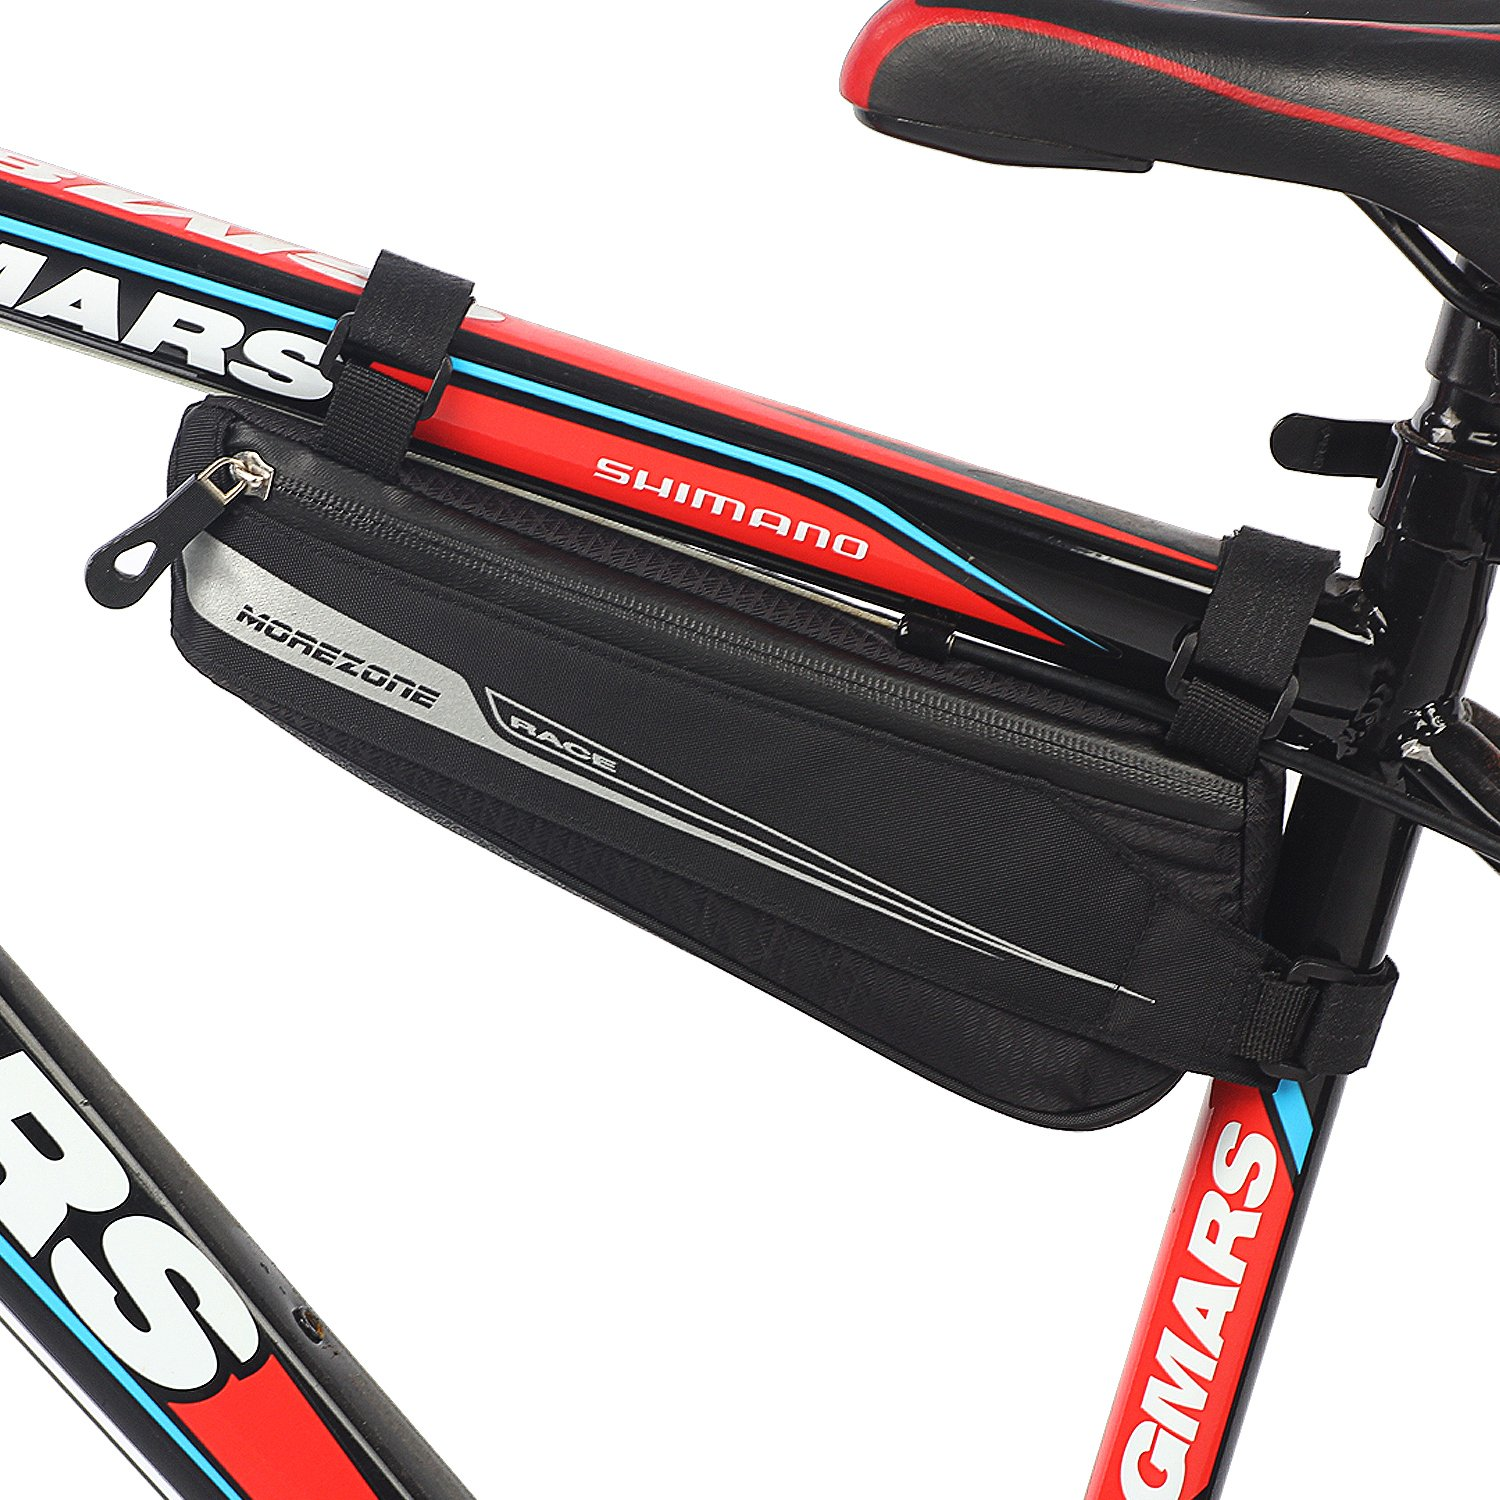 Bike Handlebar Bags Rockbros A 008 Front Waterproof Pannier Bag 3 4l Morezone Triangle Frame Bicycle Pouch Under Seat Top Tube Pack Water Resistant